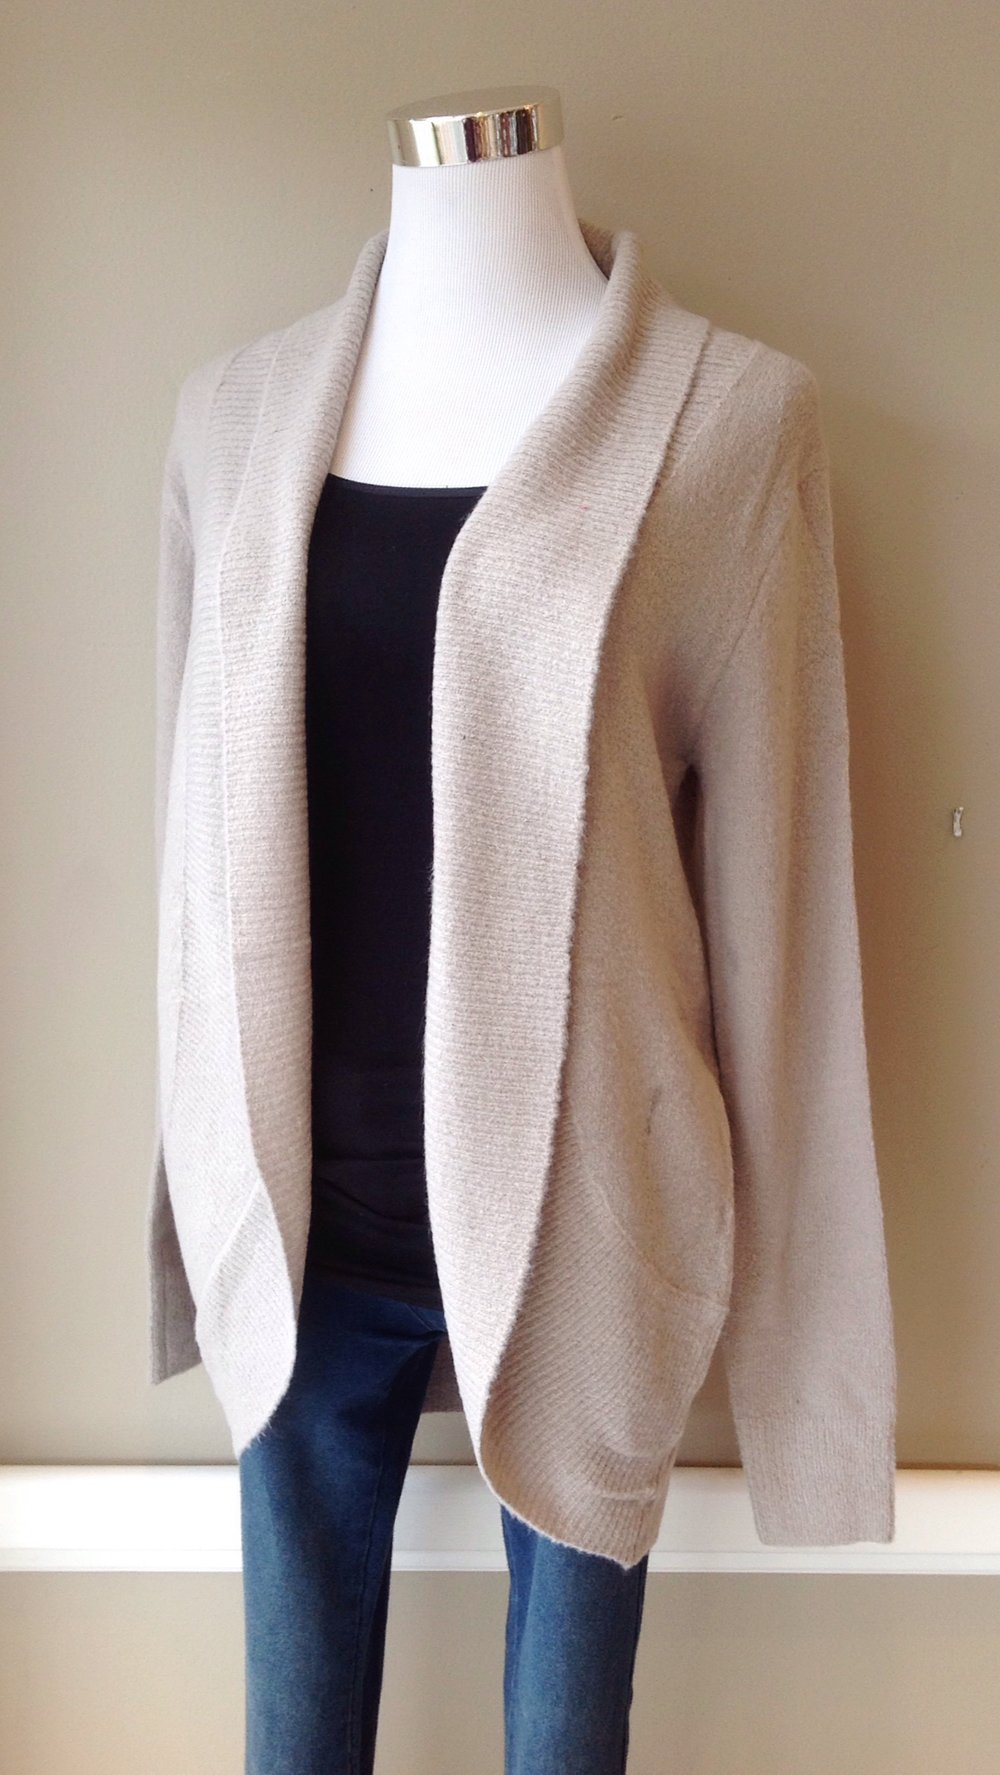 Cotton/acrylic shawl collar cardigan in light mocha